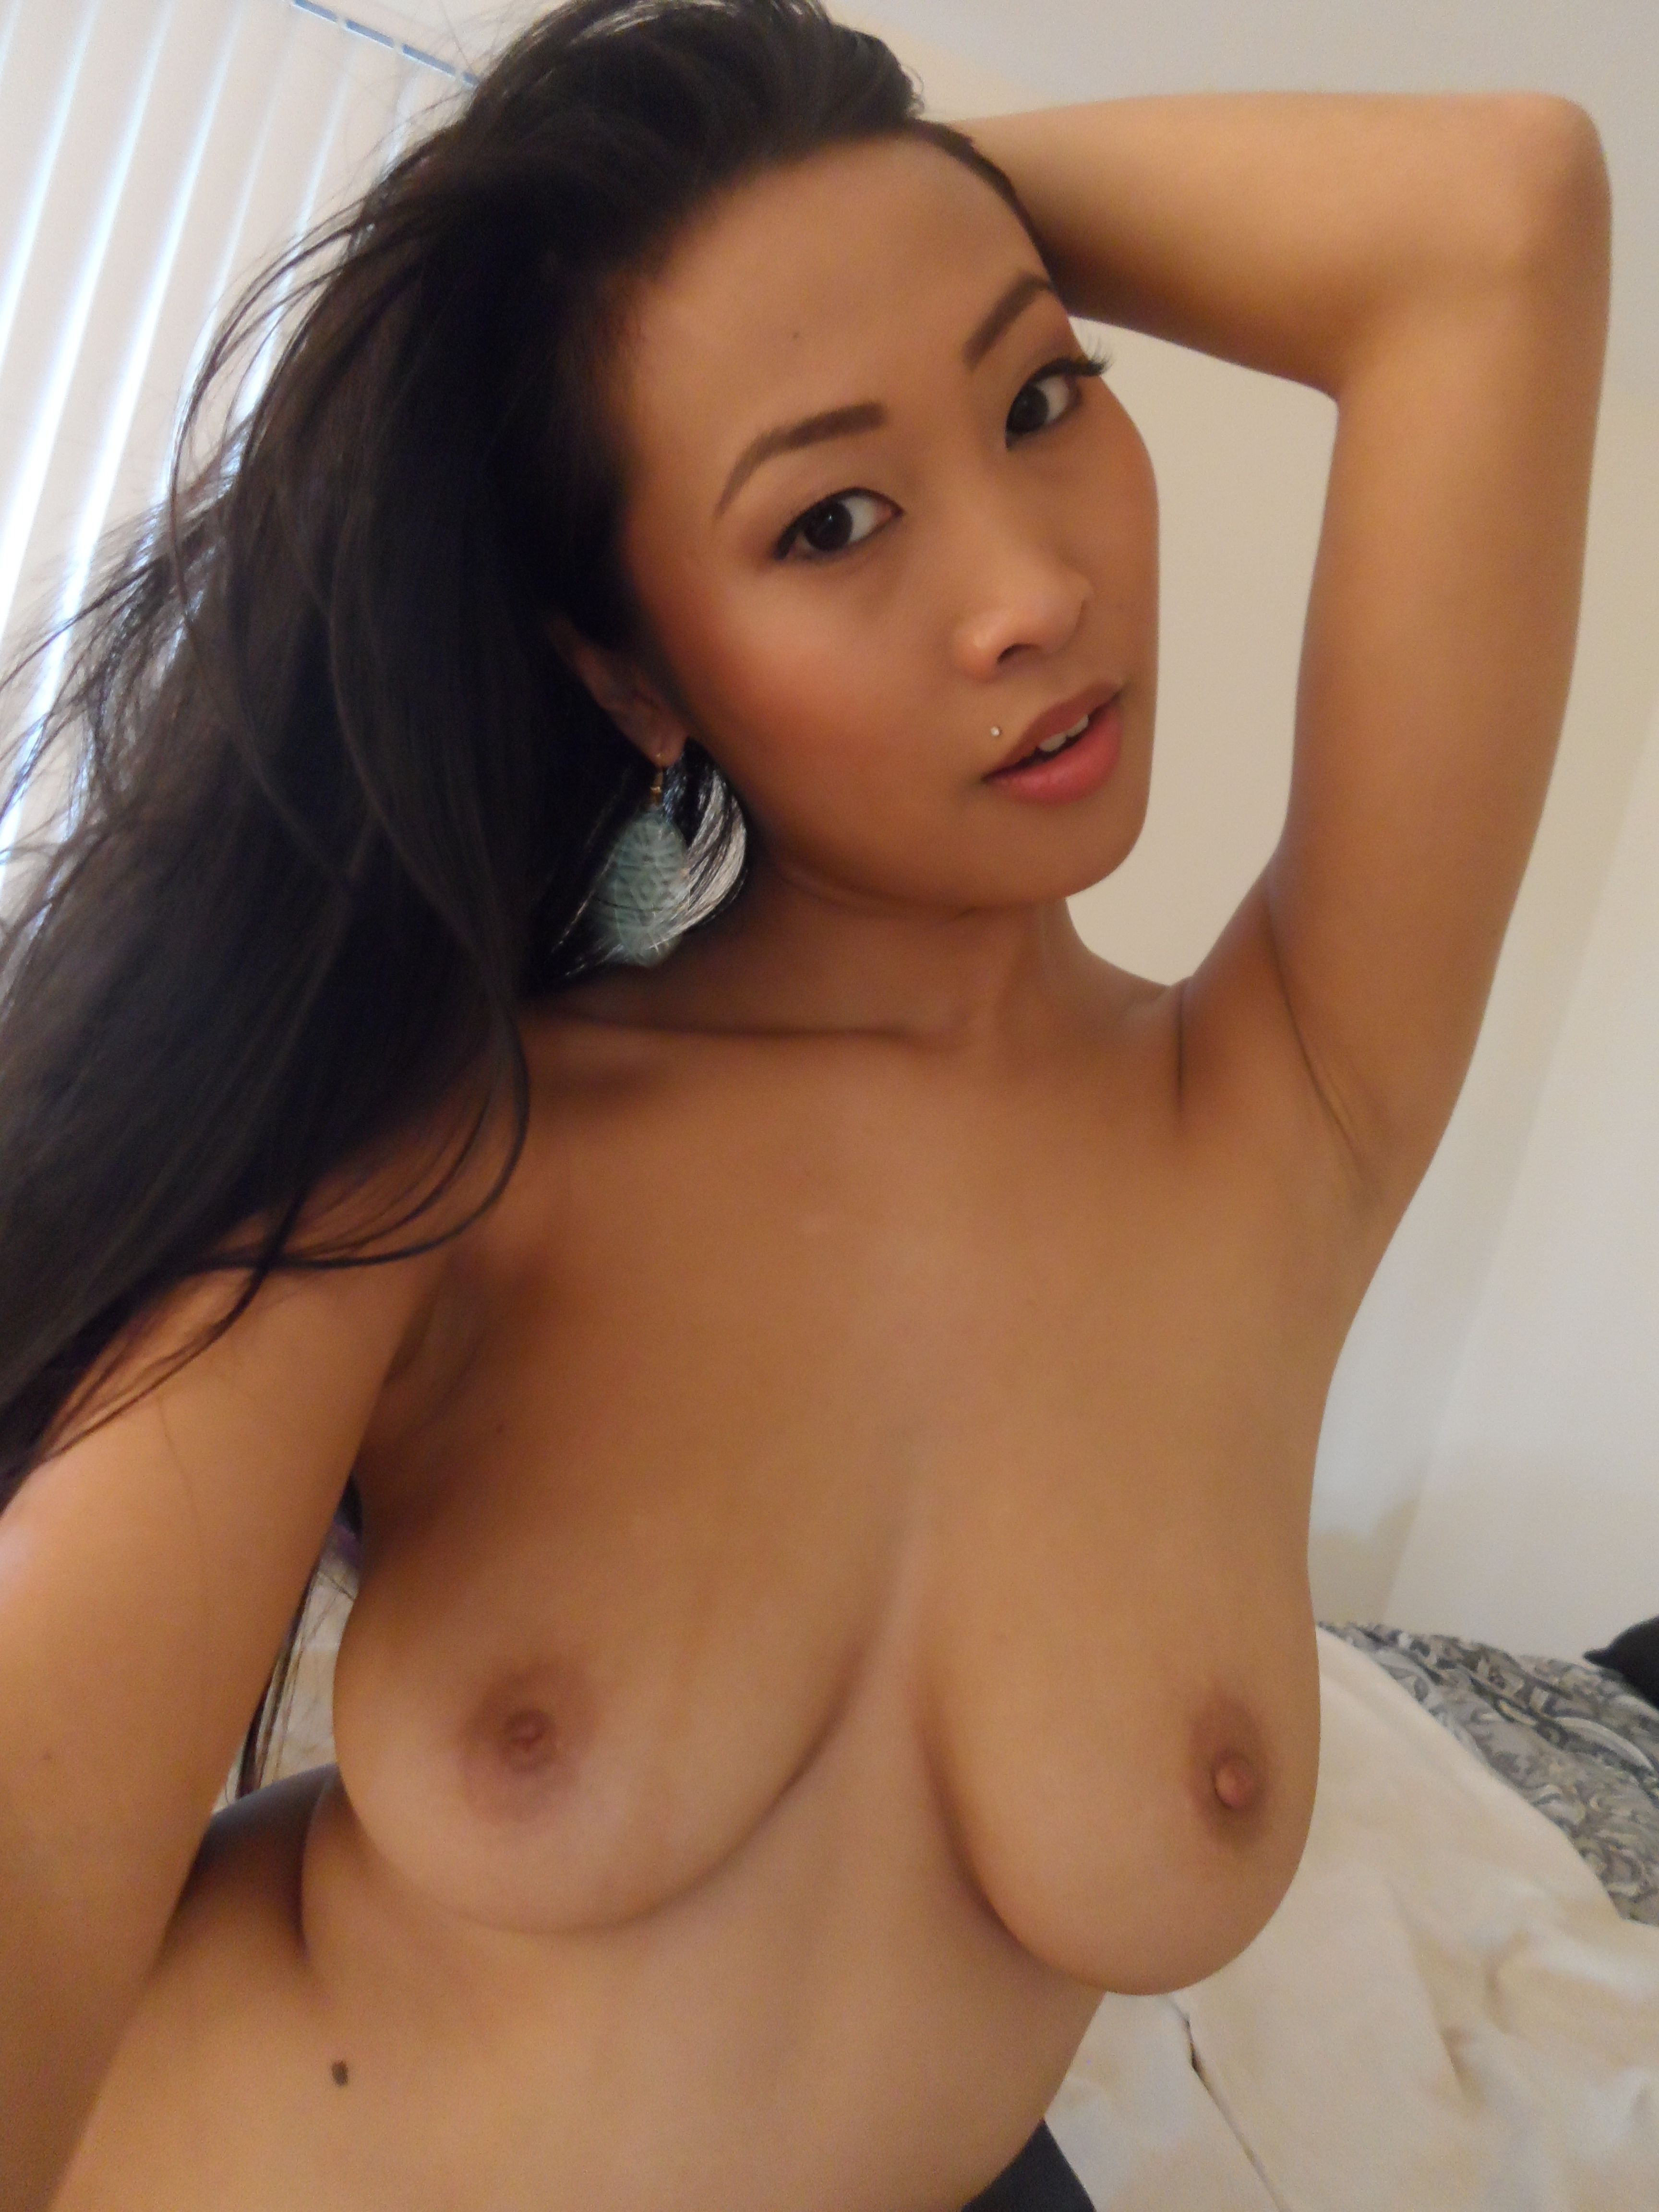 Good D. reccomend Asian girls looking for sex